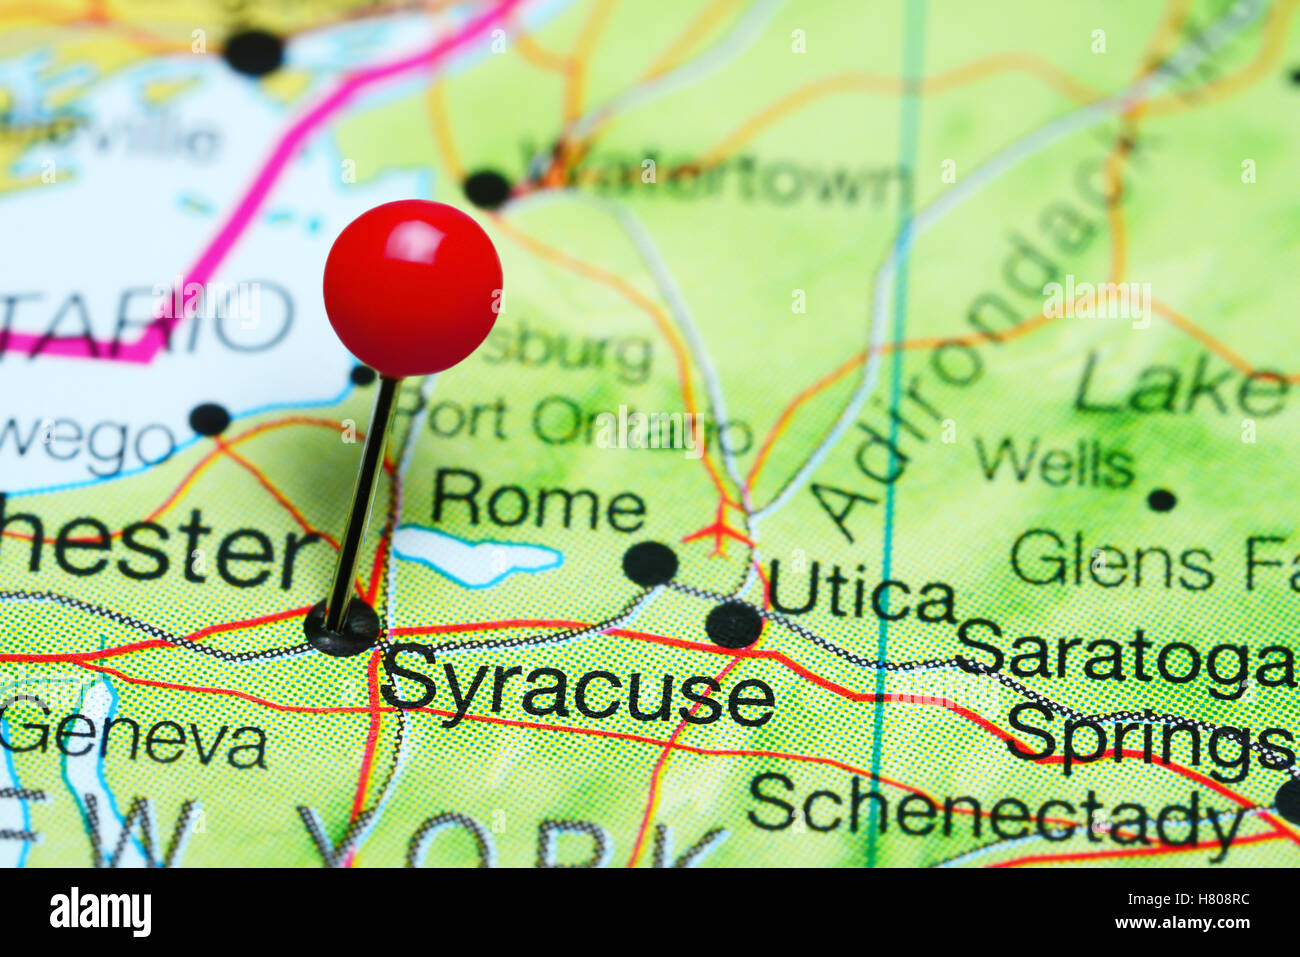 Map Of New York State Usa.Syracuse Pinned On A Map Of New York State Usa Stock Photo